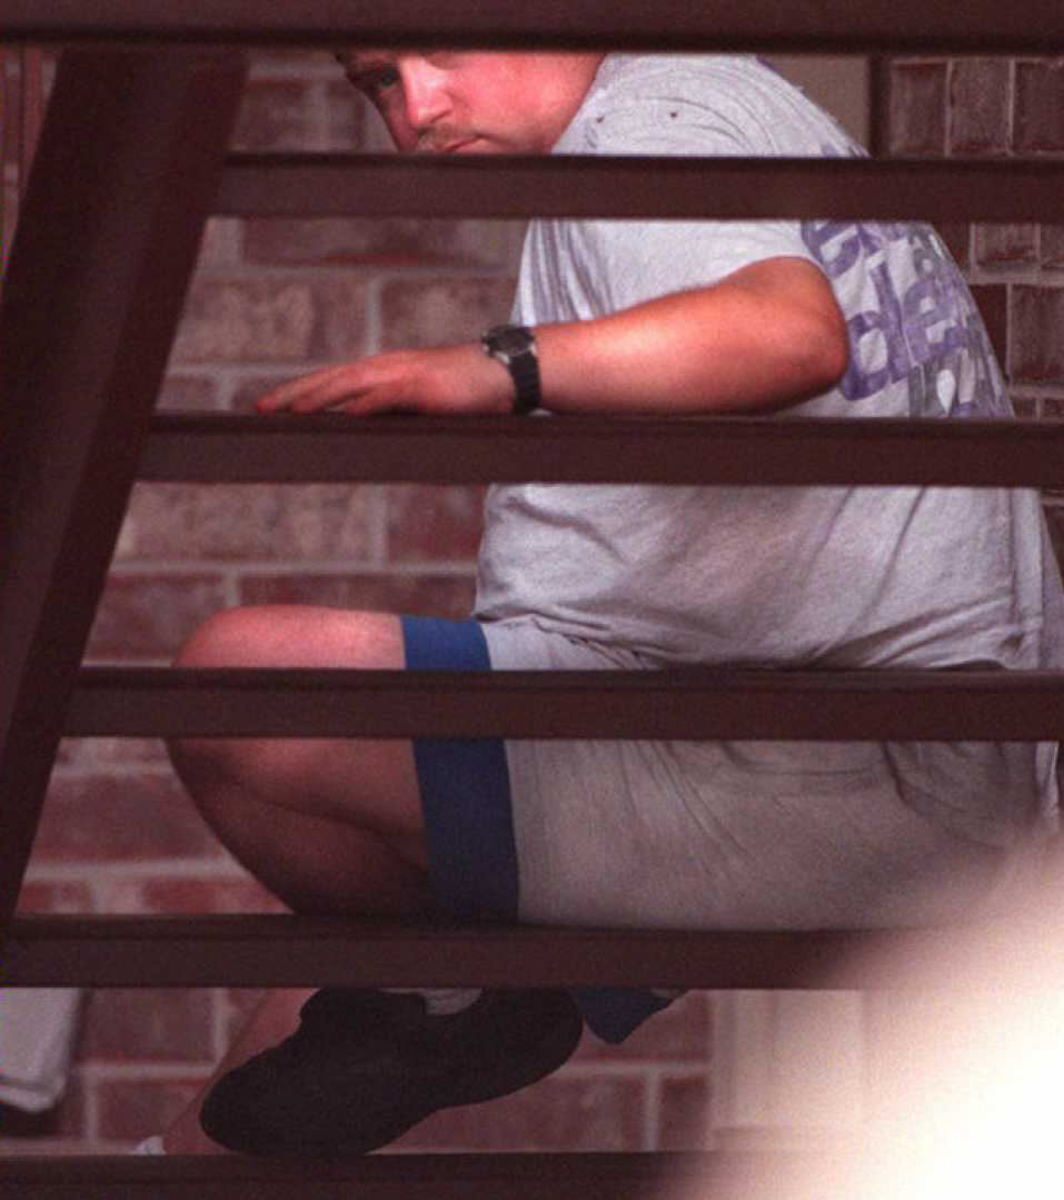 Richard Jewell looks through stairs at his apartment complex while FBI and local police agents search his apartment on July 31, 1996